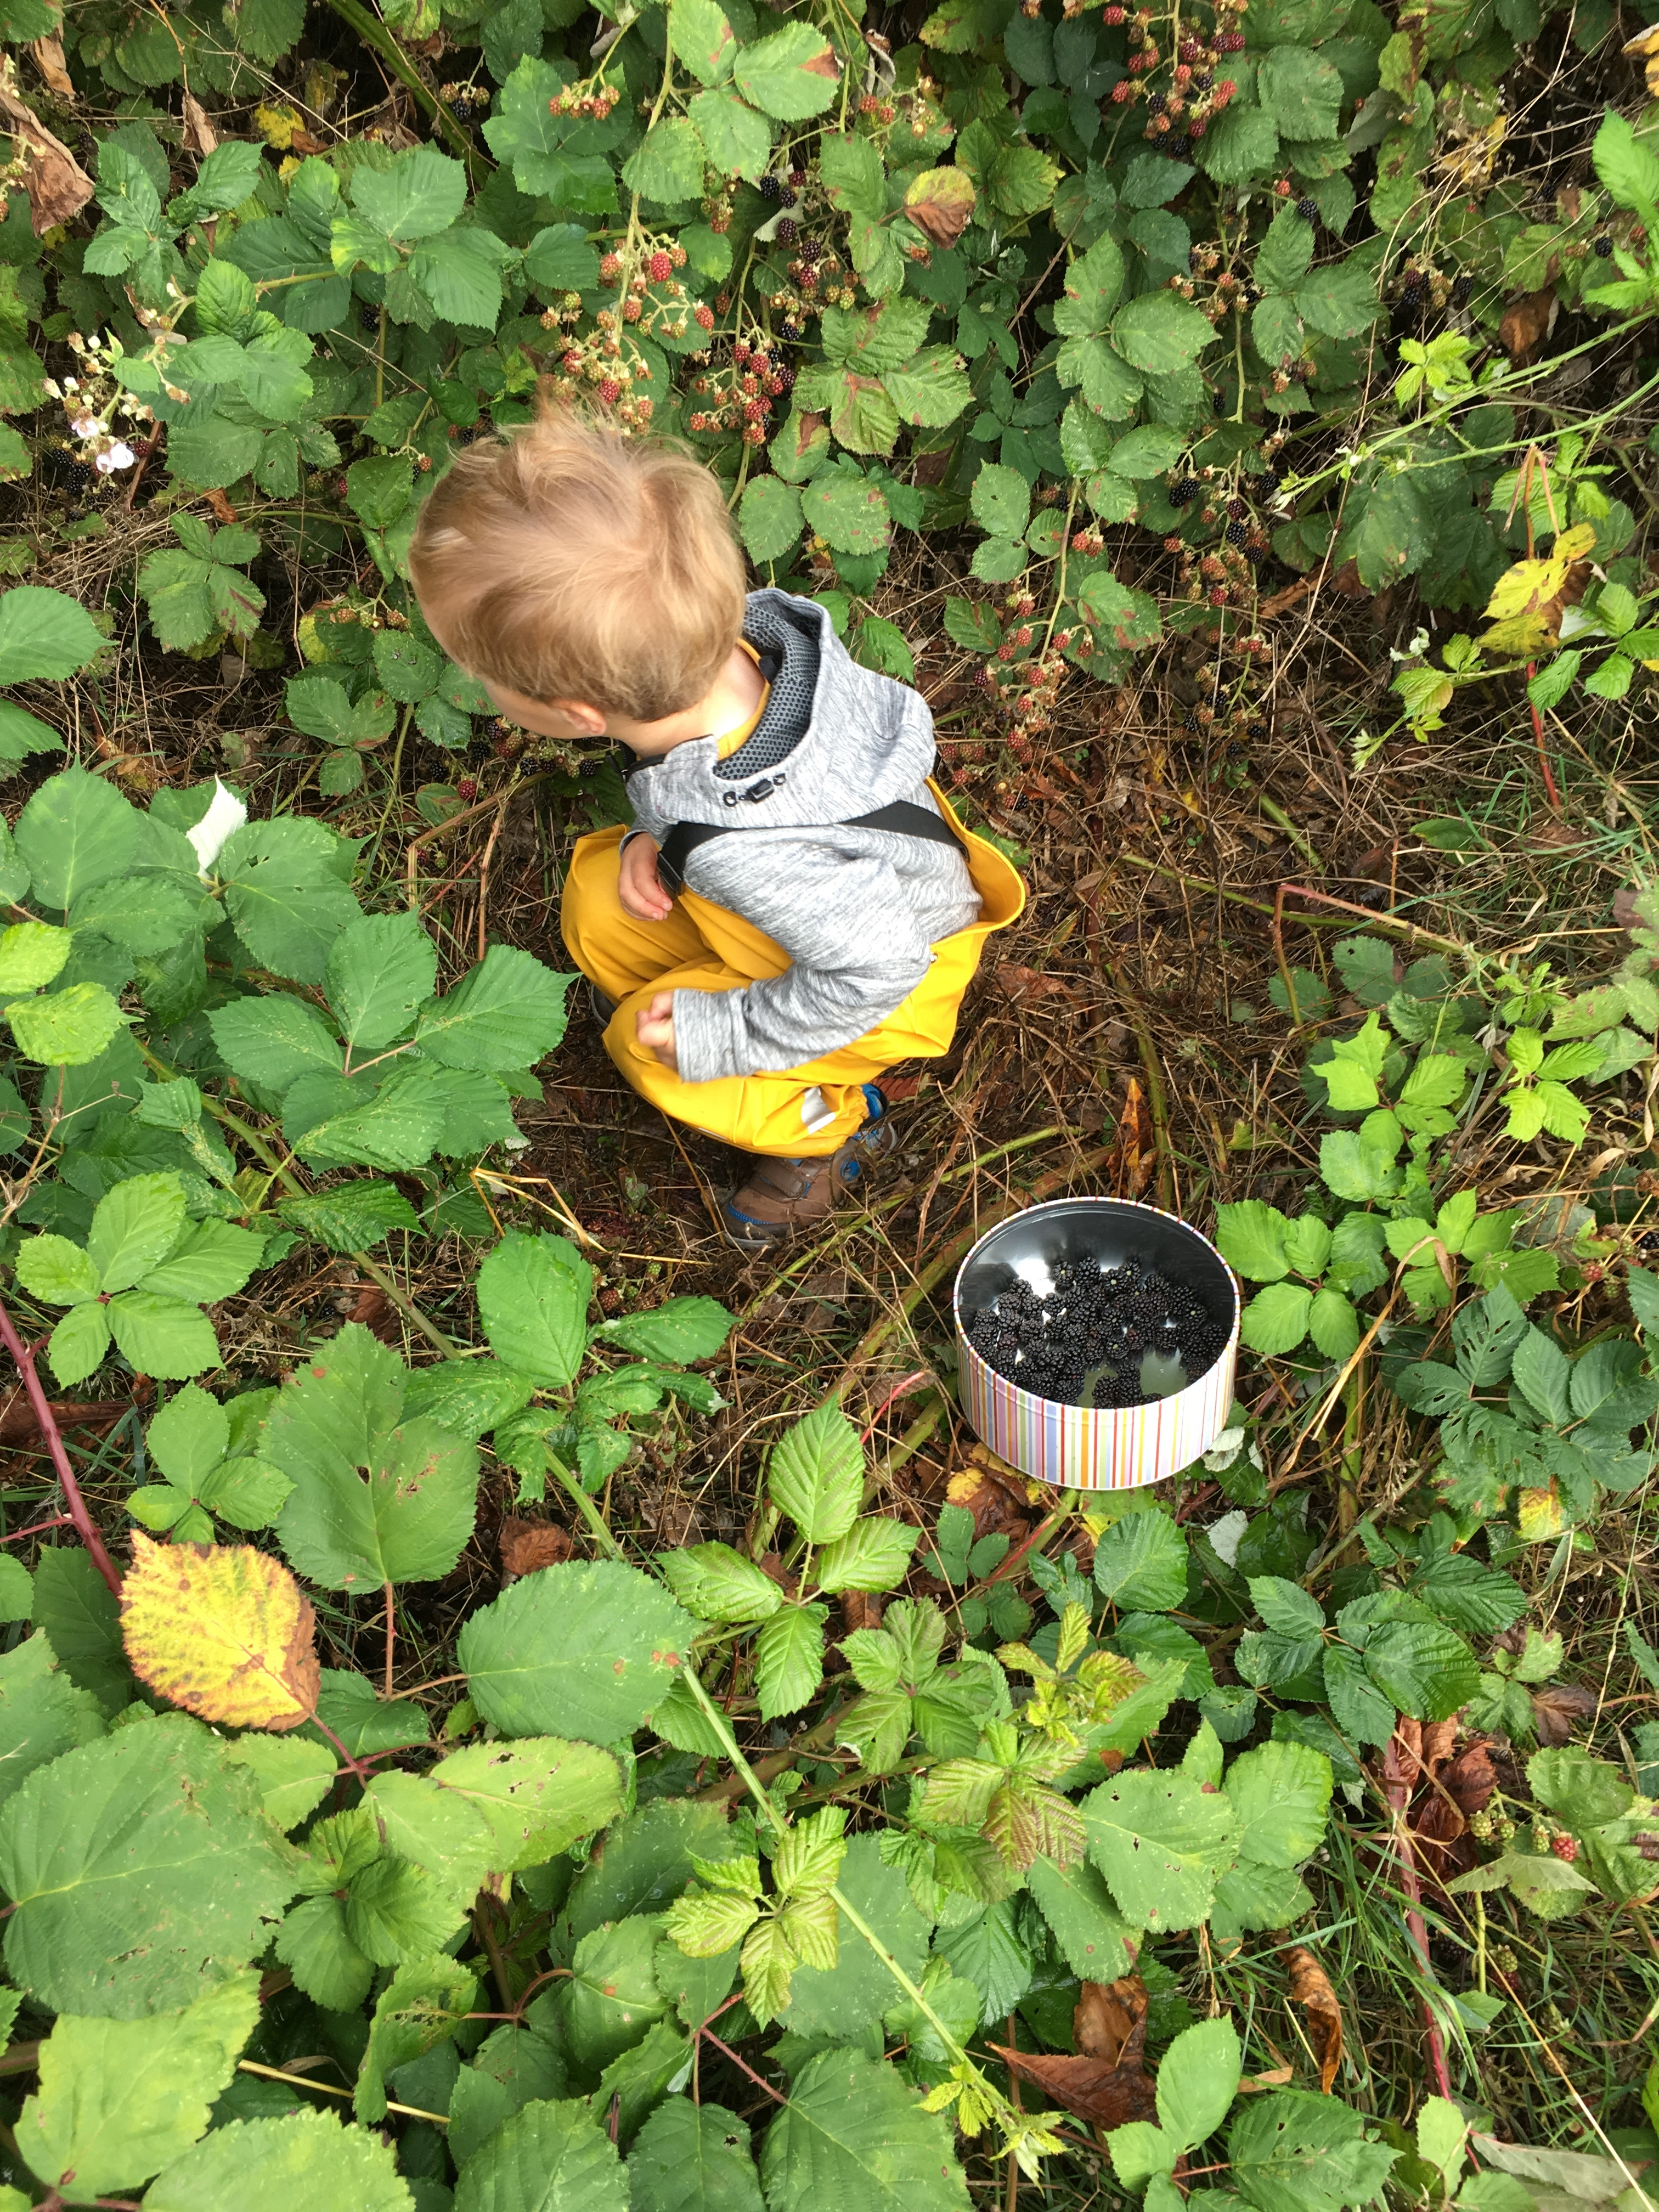 Child foraging